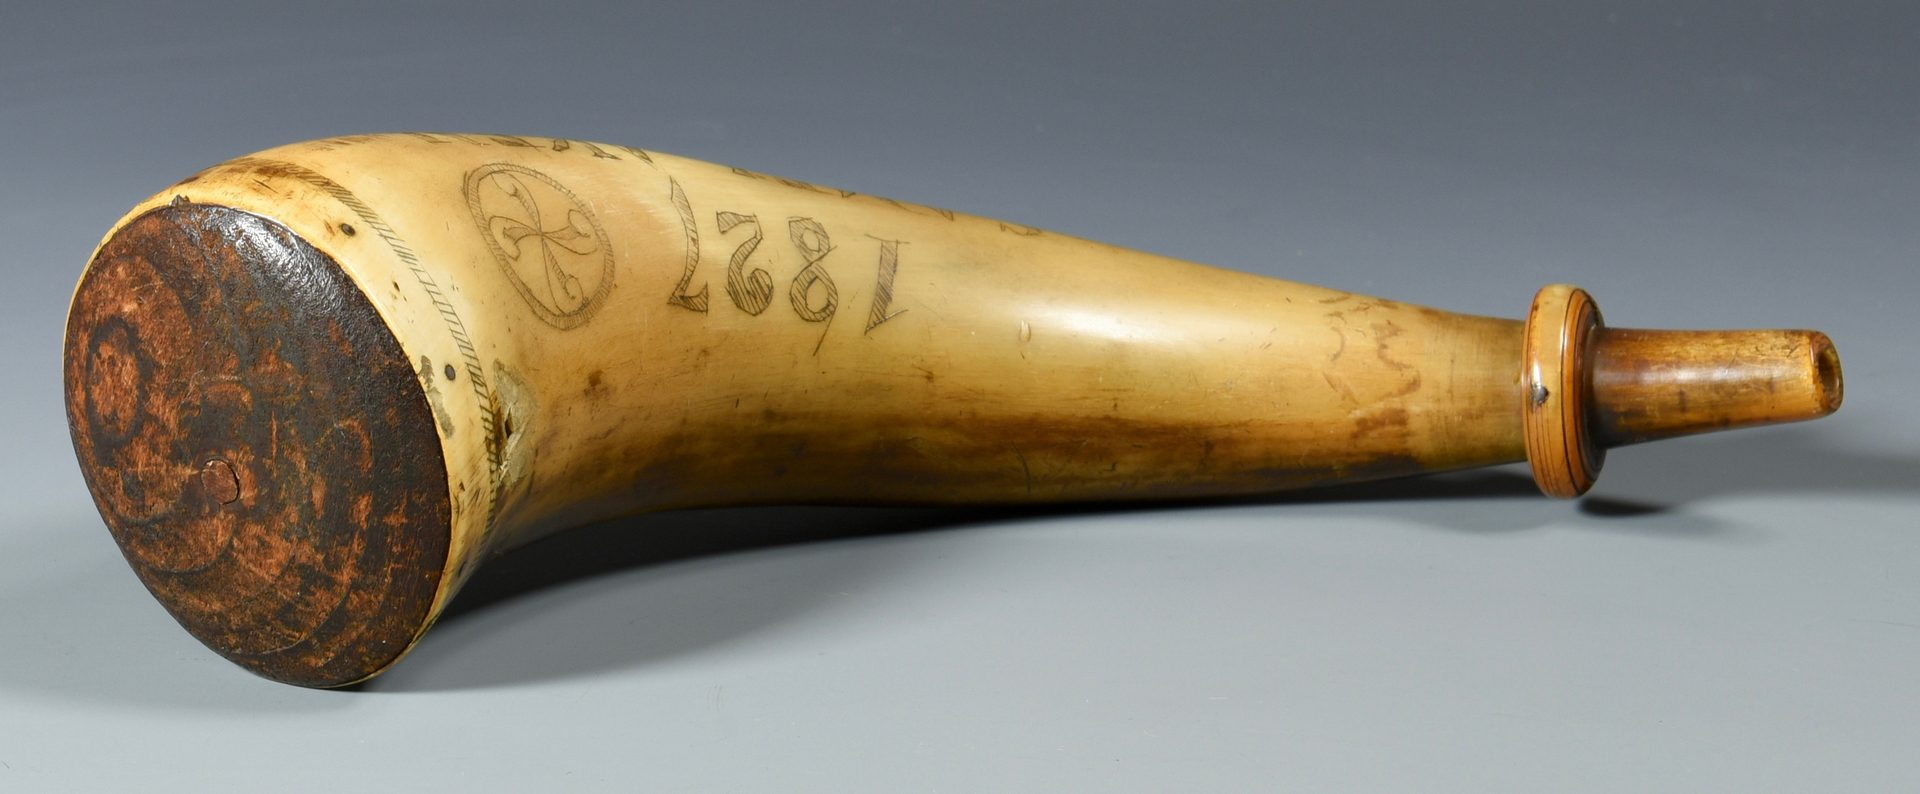 Lot 302: Signed & Dated TN Powder Horn